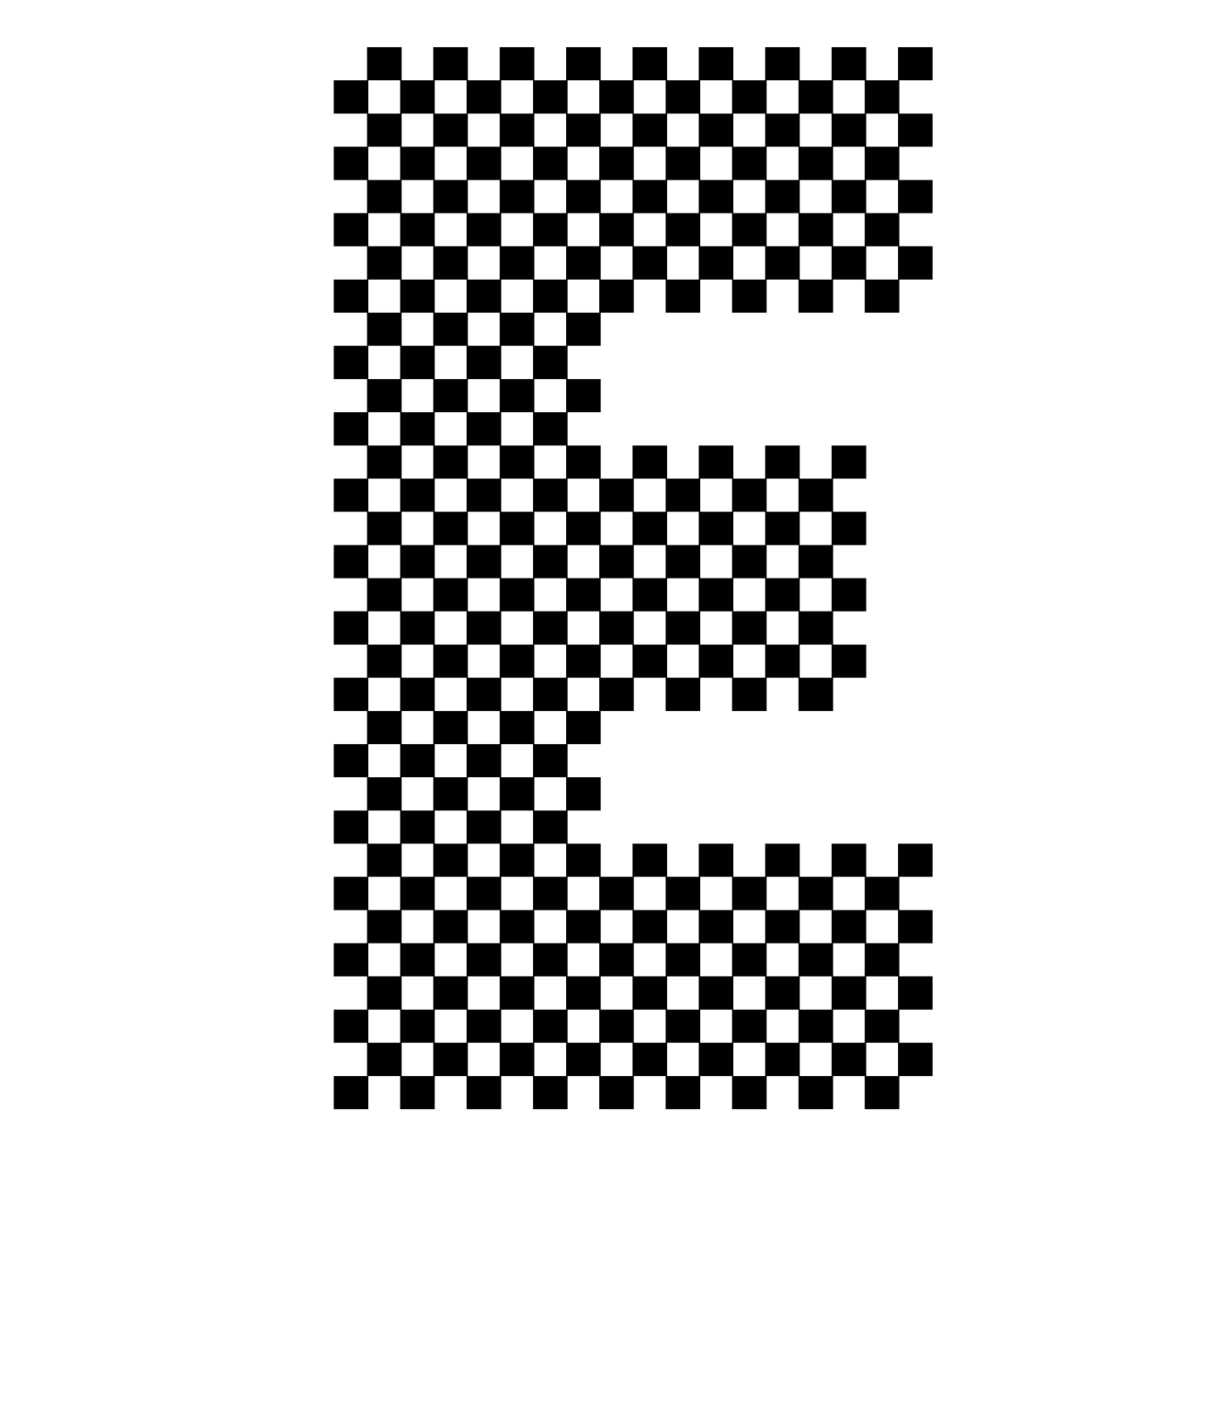 pattern-project-letters-04-1220x1407px